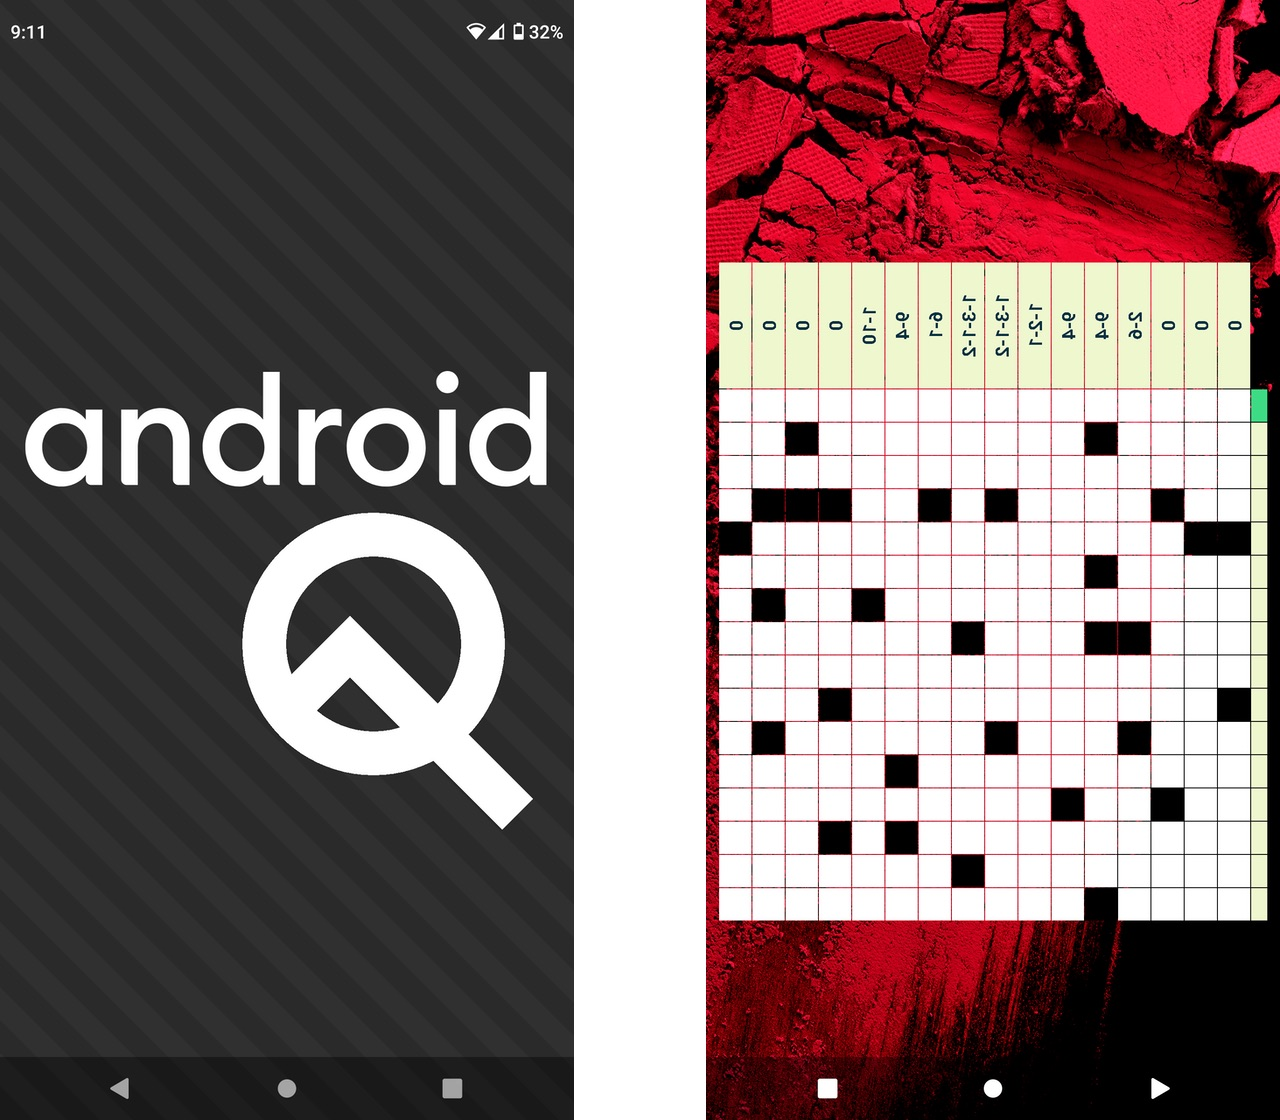 Android Q easter egg